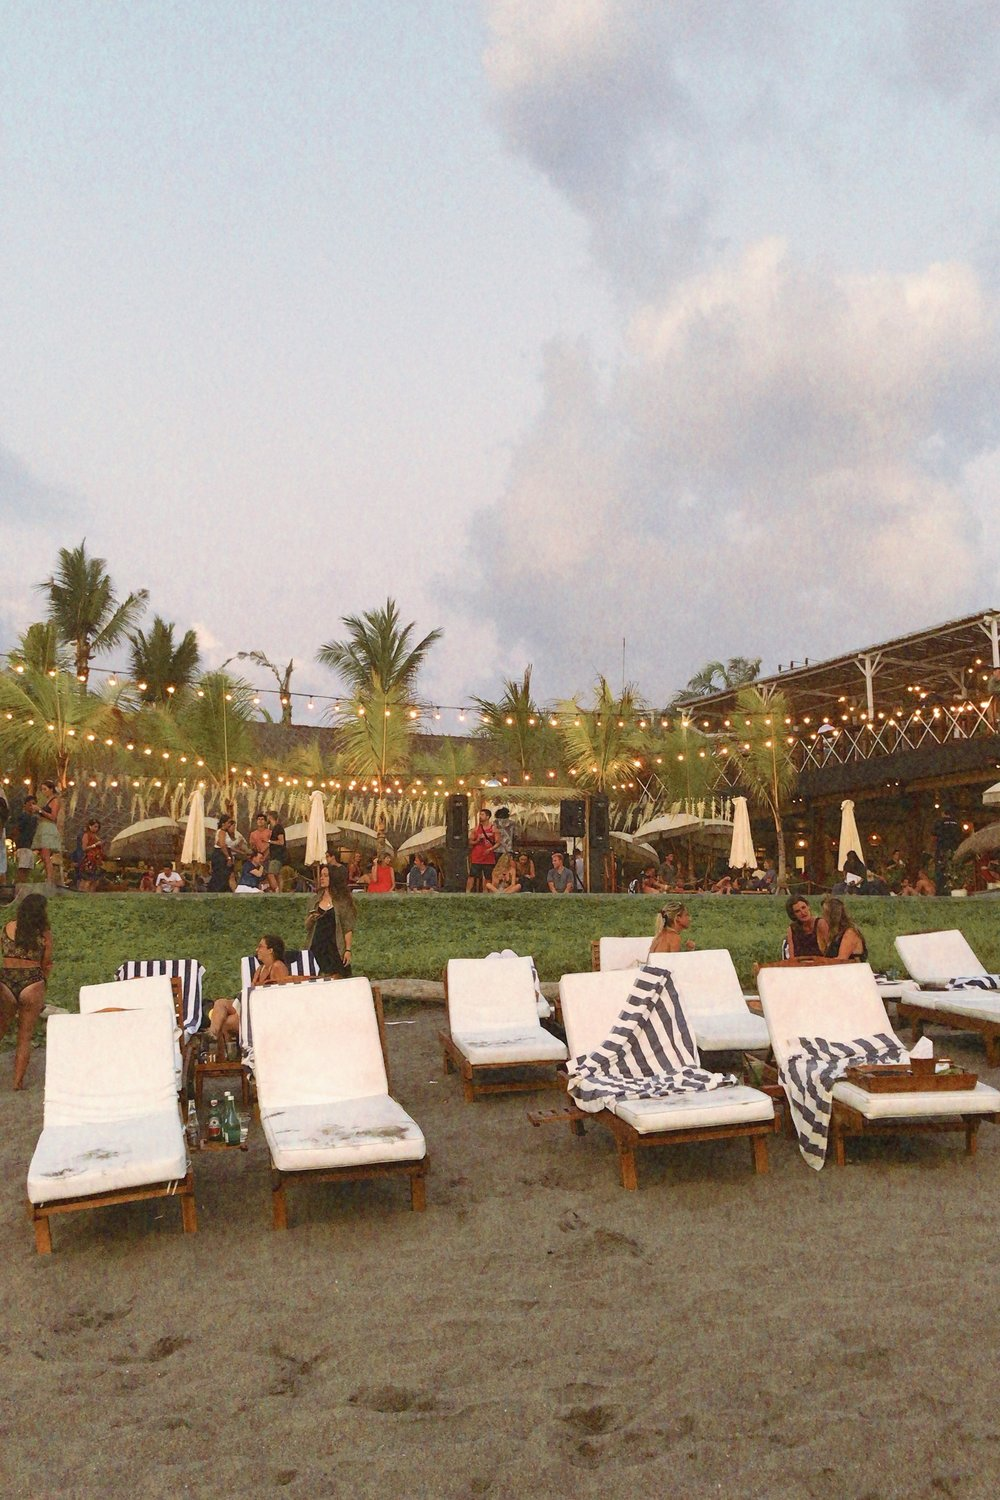 the lawn canguu sunset in bali